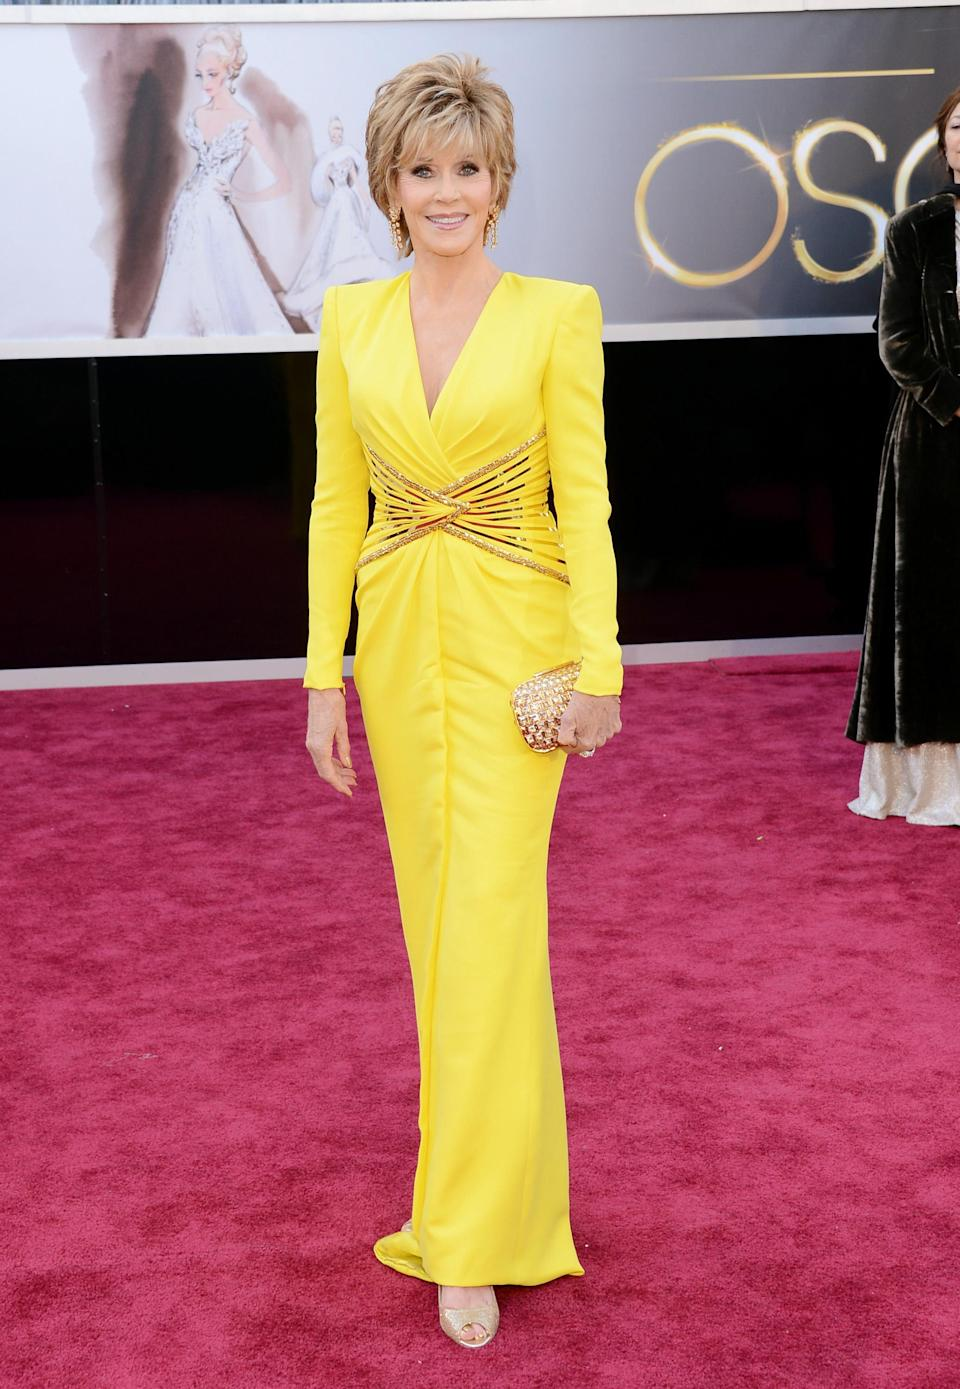 Jane Fonda at the Oscars on Feb. 24, 2013, in Hollywood, Calif. (Photo: Getty Images)